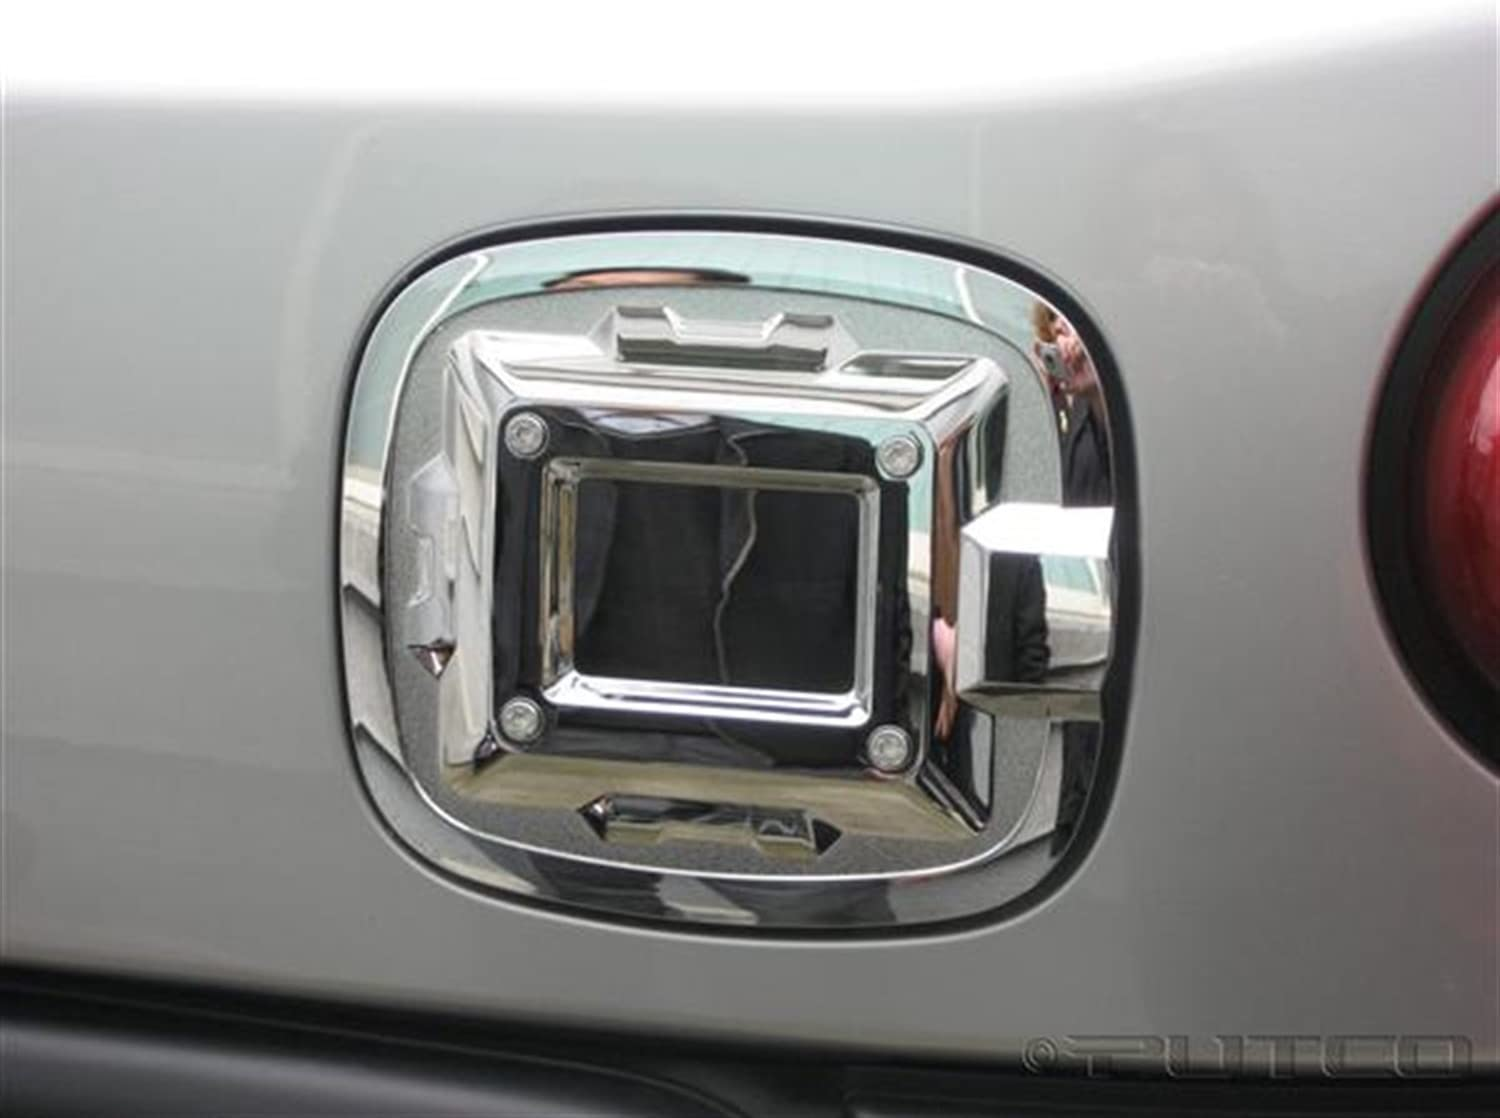 Putco 400937 Chrome Fuel Tank Door Cover for Select Toyota Models